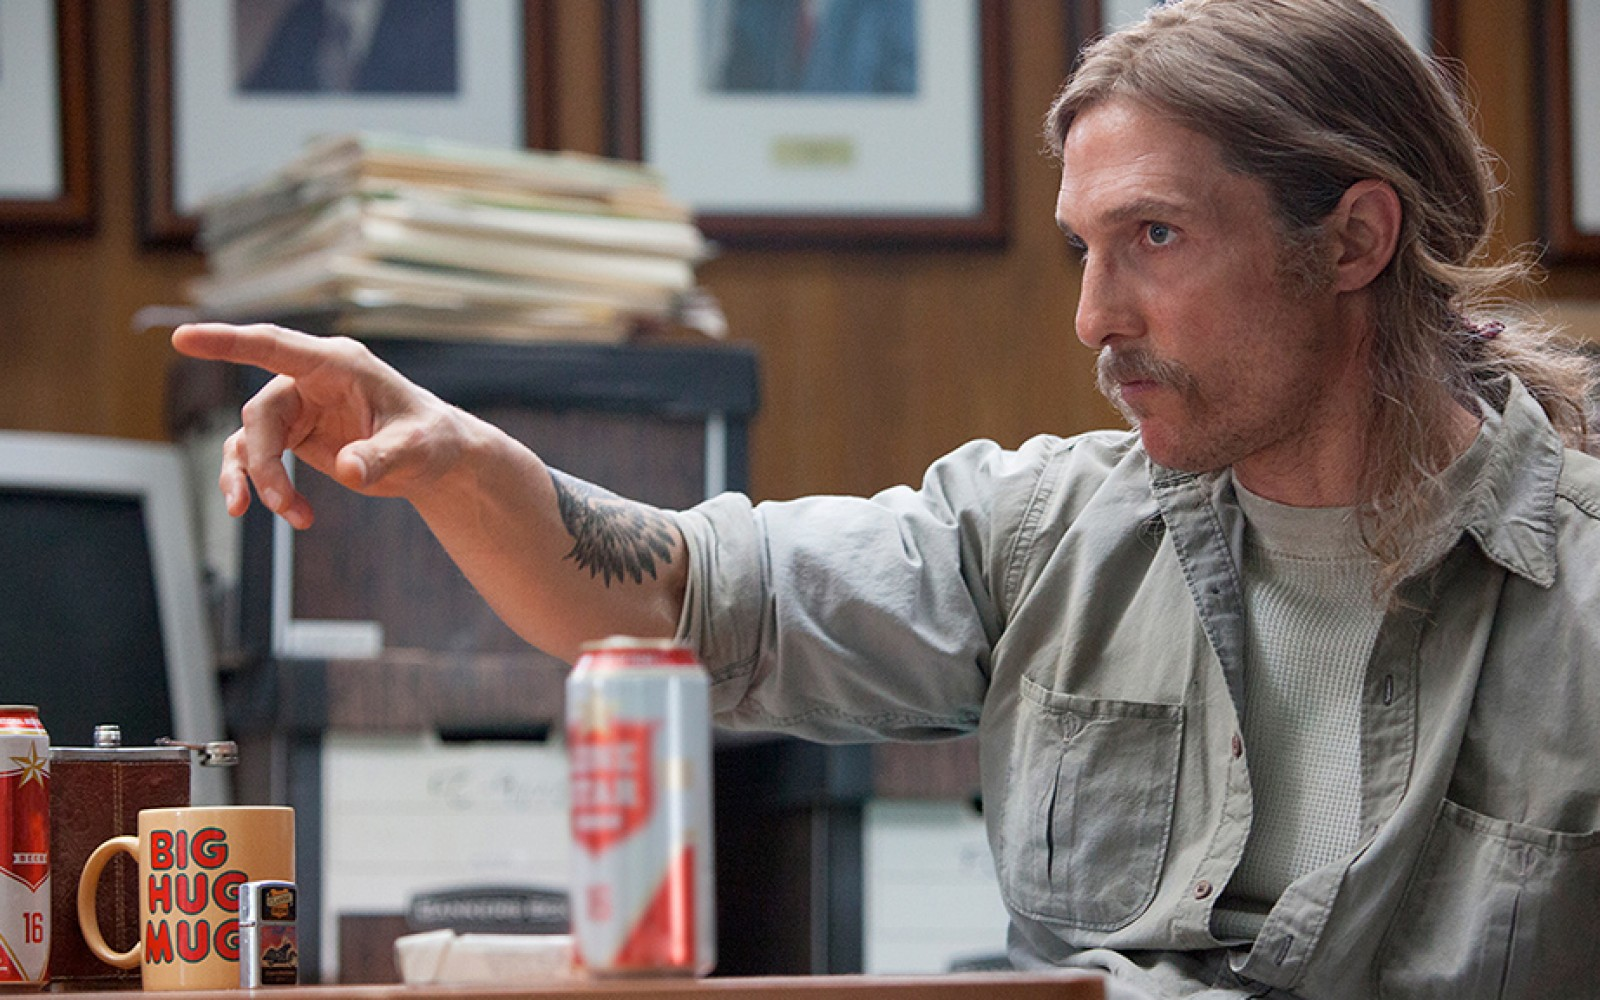 10 Brutal Truths and Philosophies From Rust Cohle In 'True Detective' That Will Make Your Mind Wander